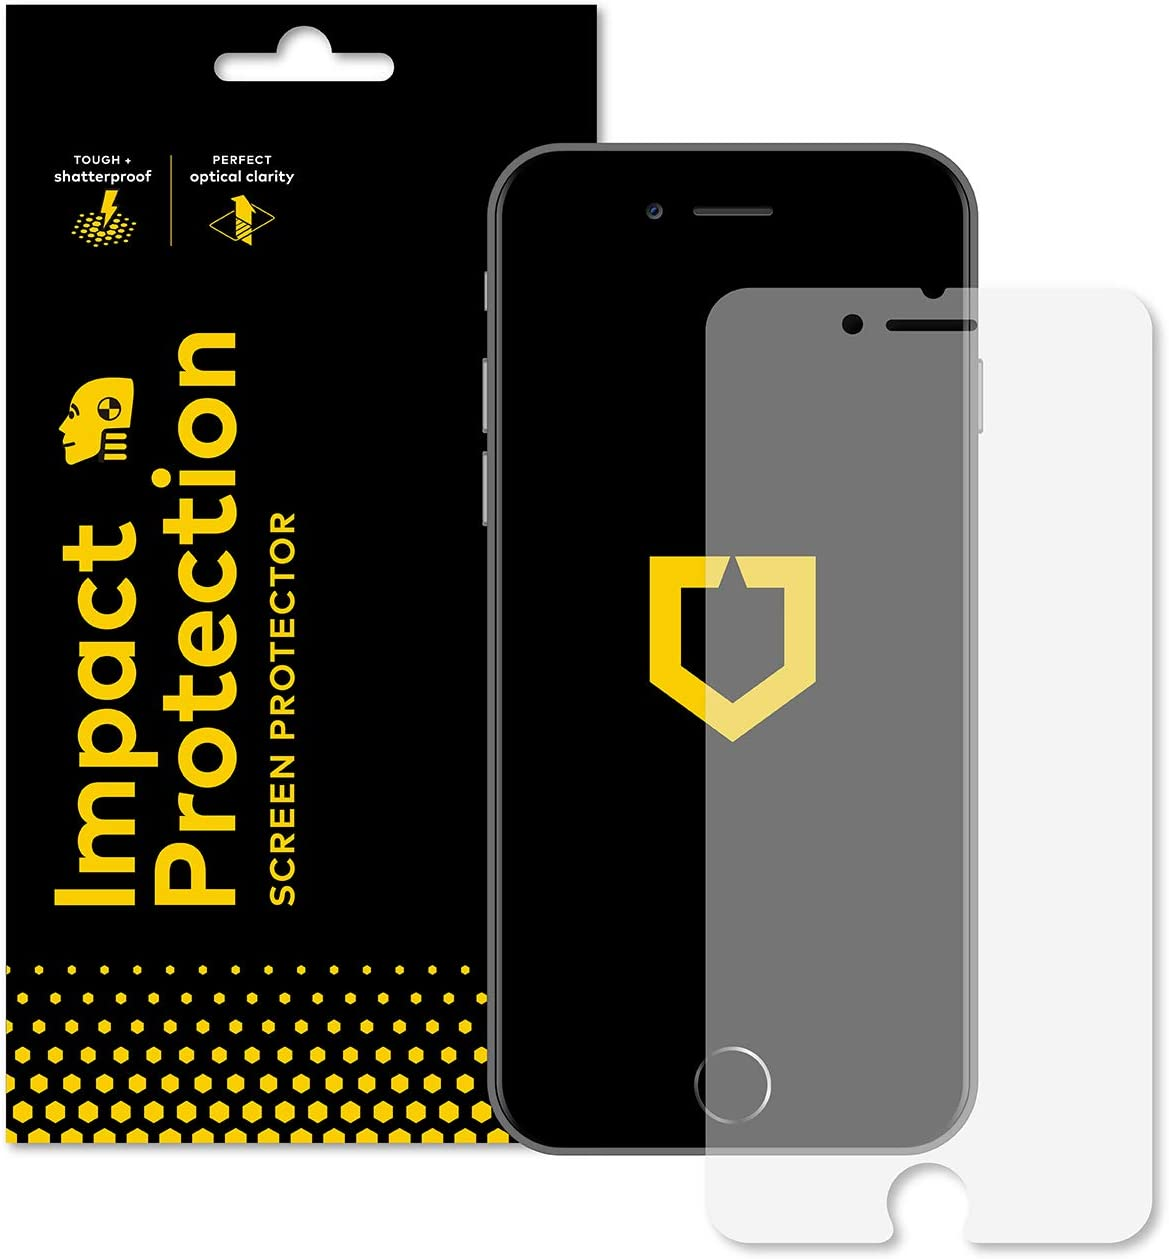 iPhone 8, iPhone 7 Screen Protector [RhinoShield] Bubble Free and Case Friendly Hammer Tested Impact Protection - Clear and Scratch Resistant Screen Protection for iPhone 8/7